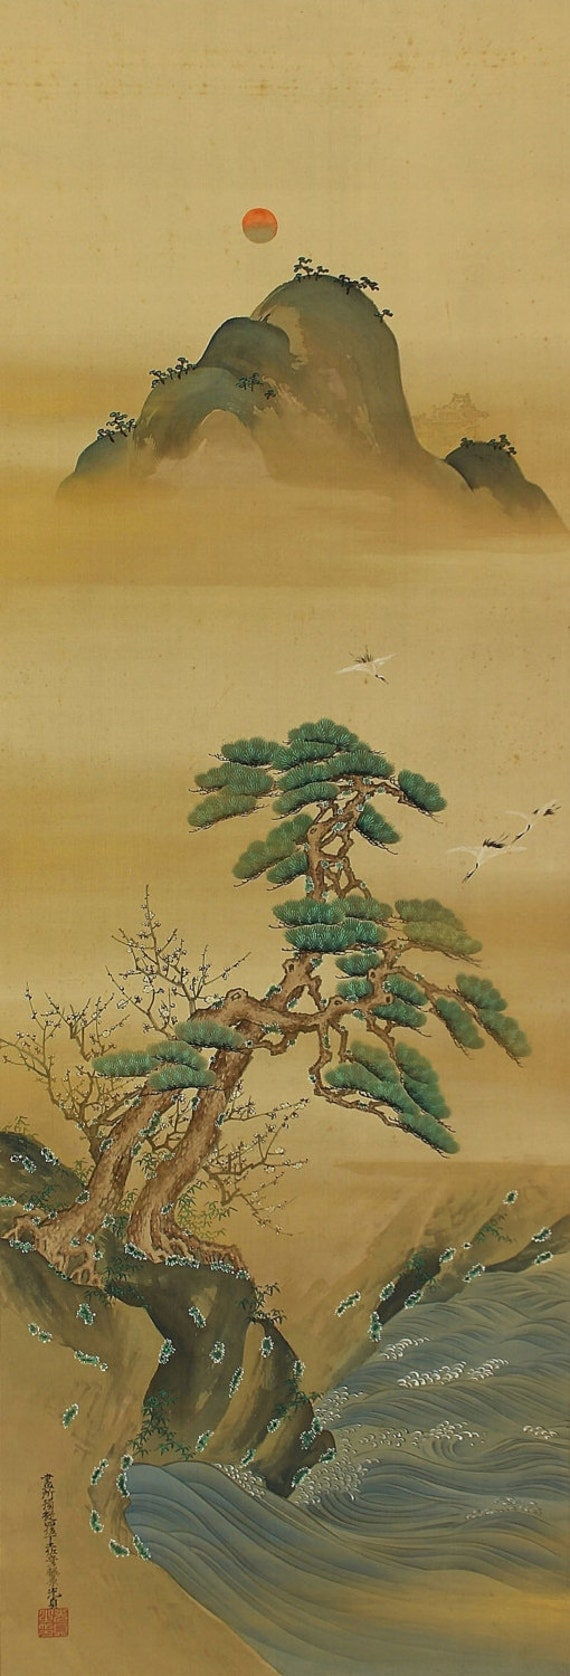 Antique Japanese Fine Art Painting Wall Hanging Scroll Landscape Mt. Penglai Kakejiku – 1408076